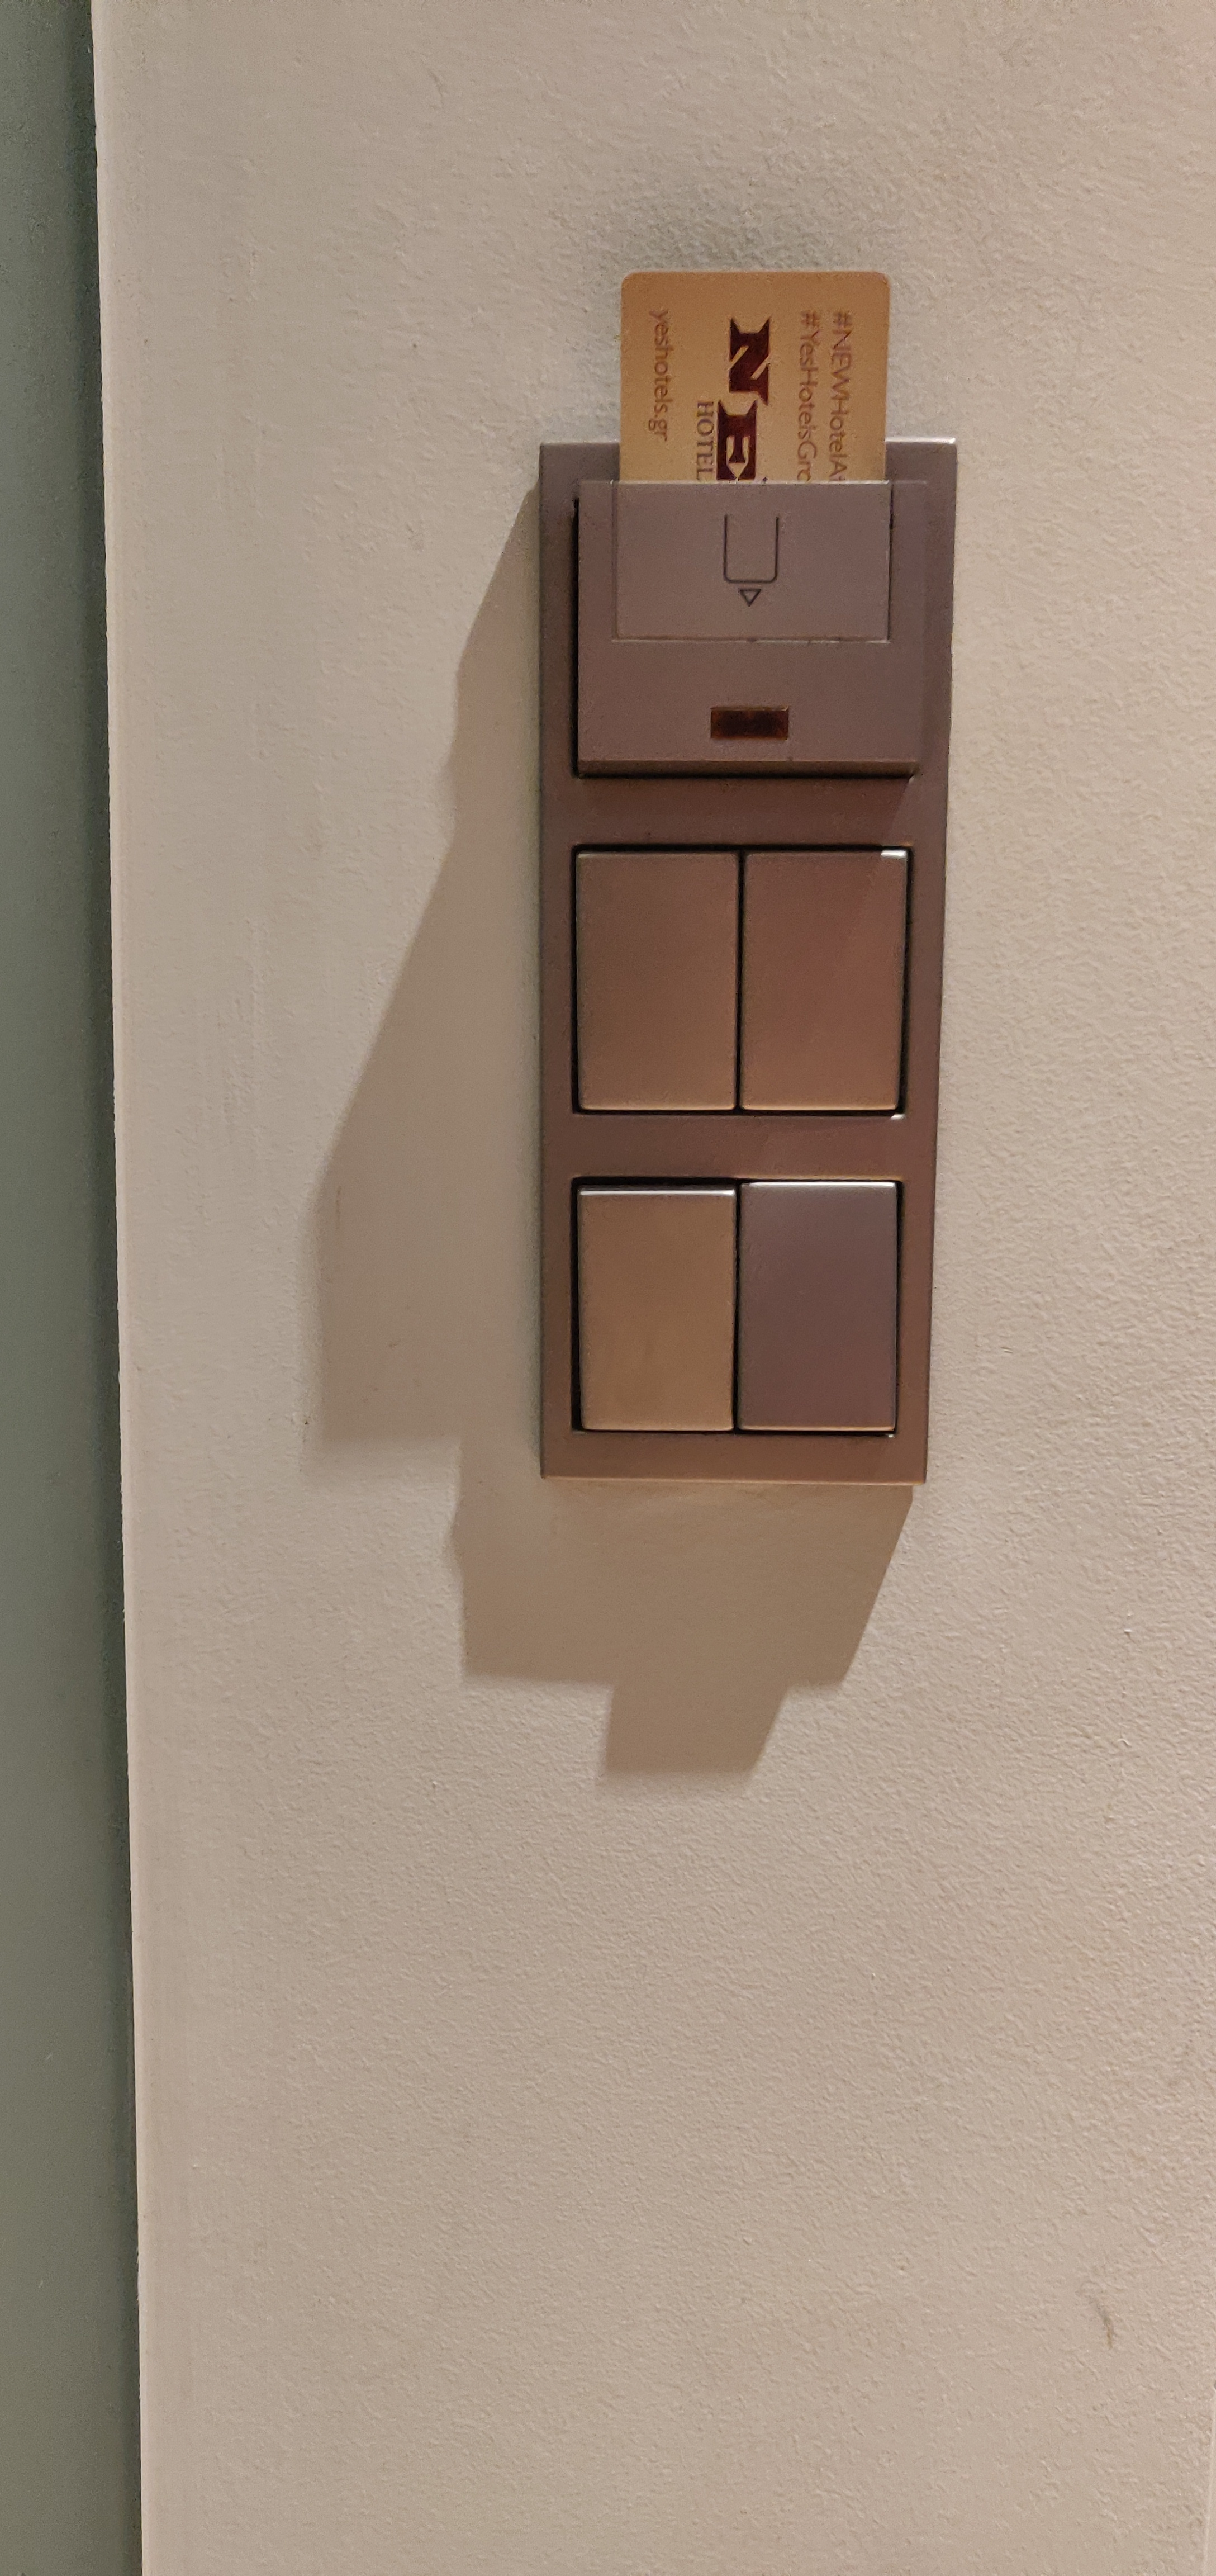 NEW Hotel, Athens - Light Switch